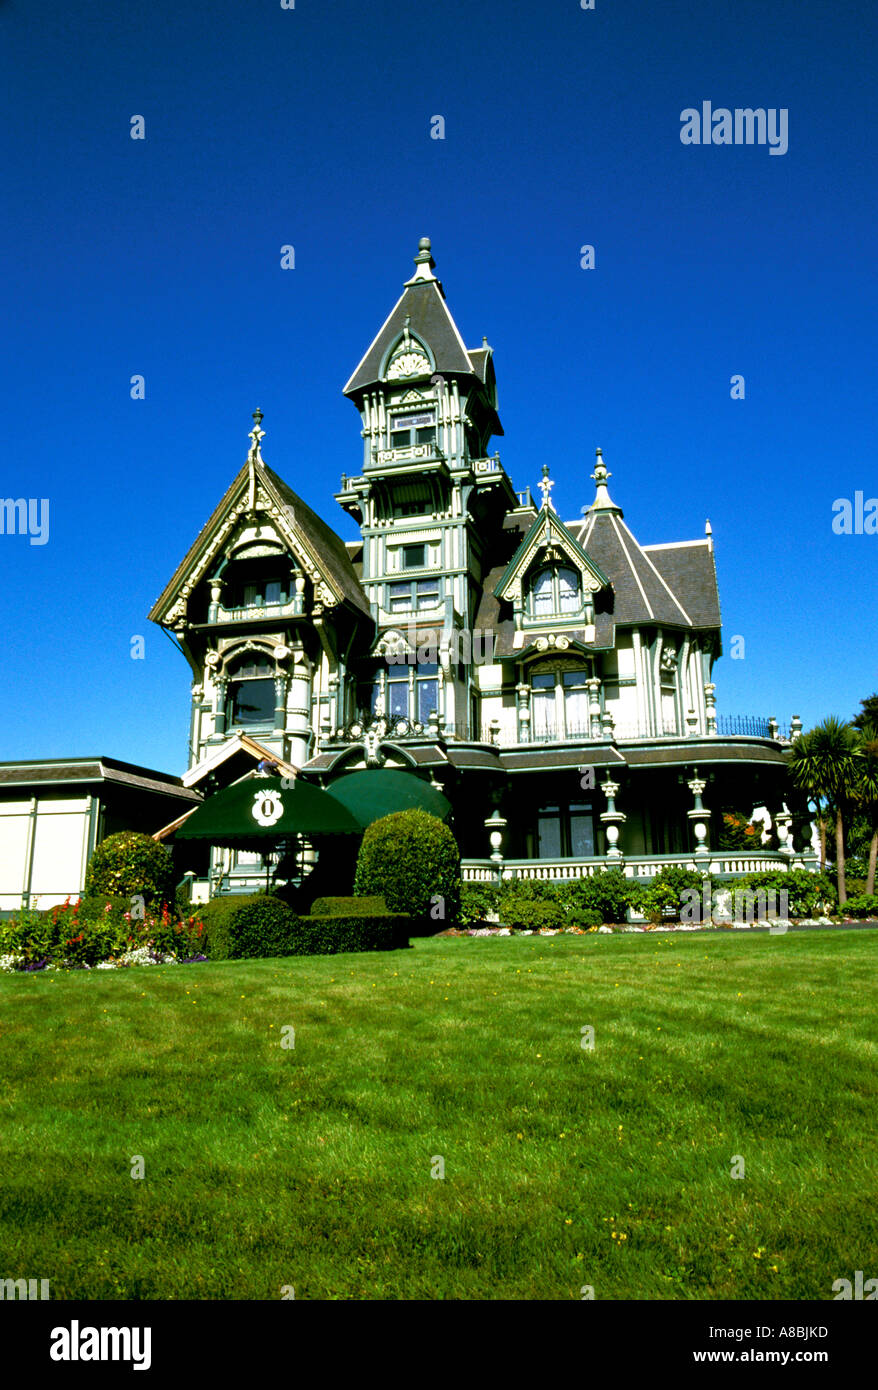 California Redwood Country The Carson Mansion in Eureka - Stock Image